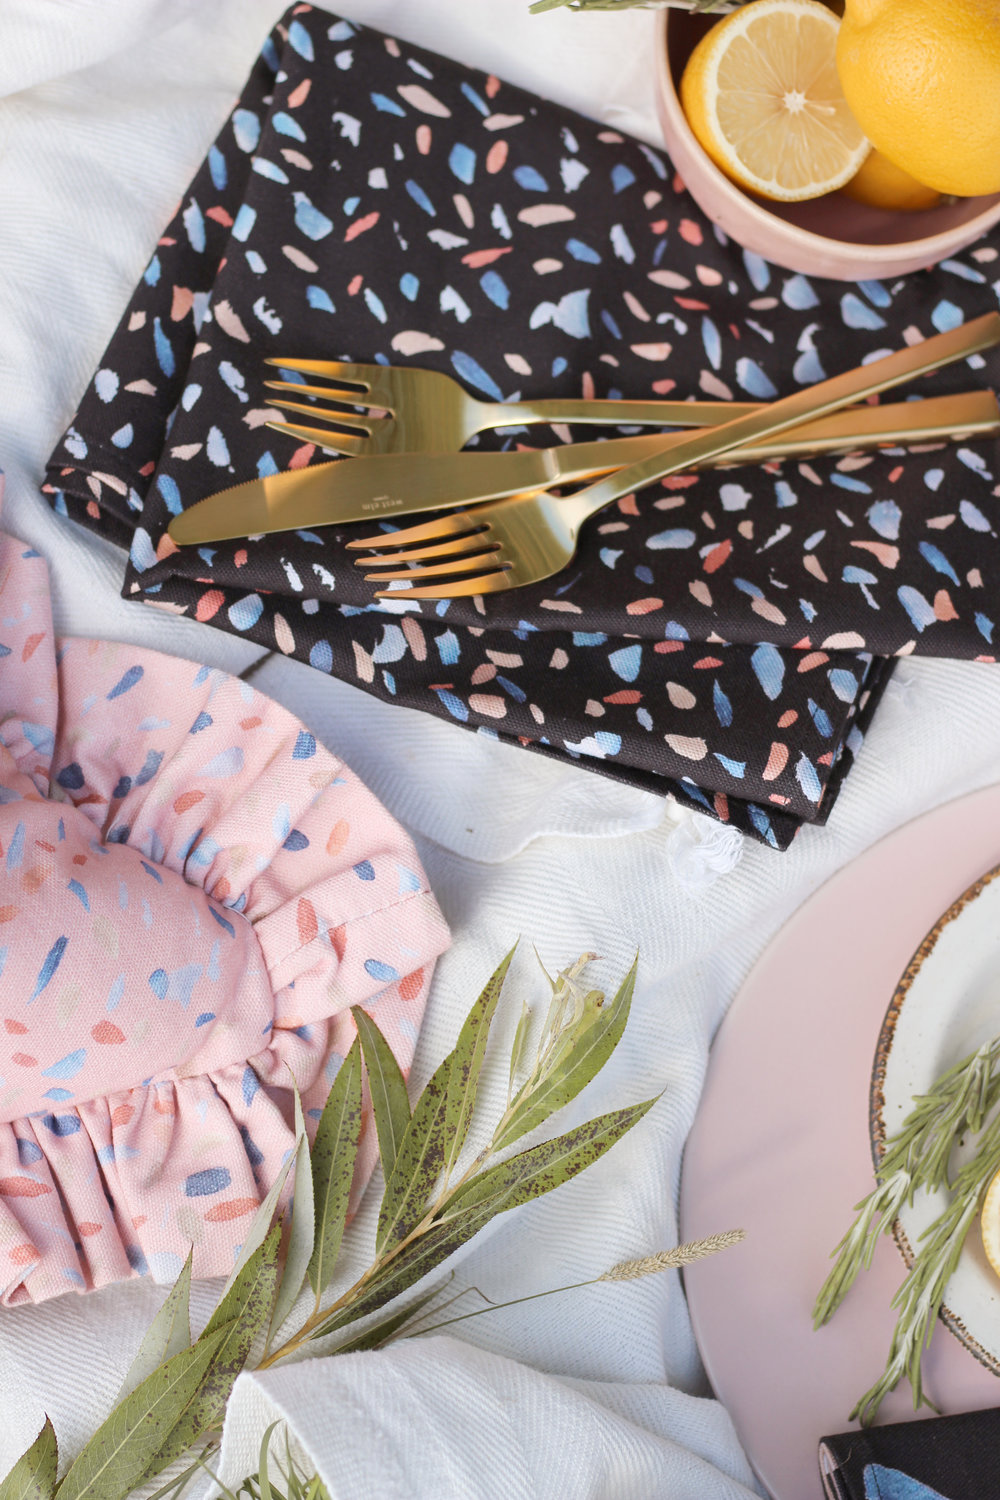 House Anna table linens creating a stylish picnic